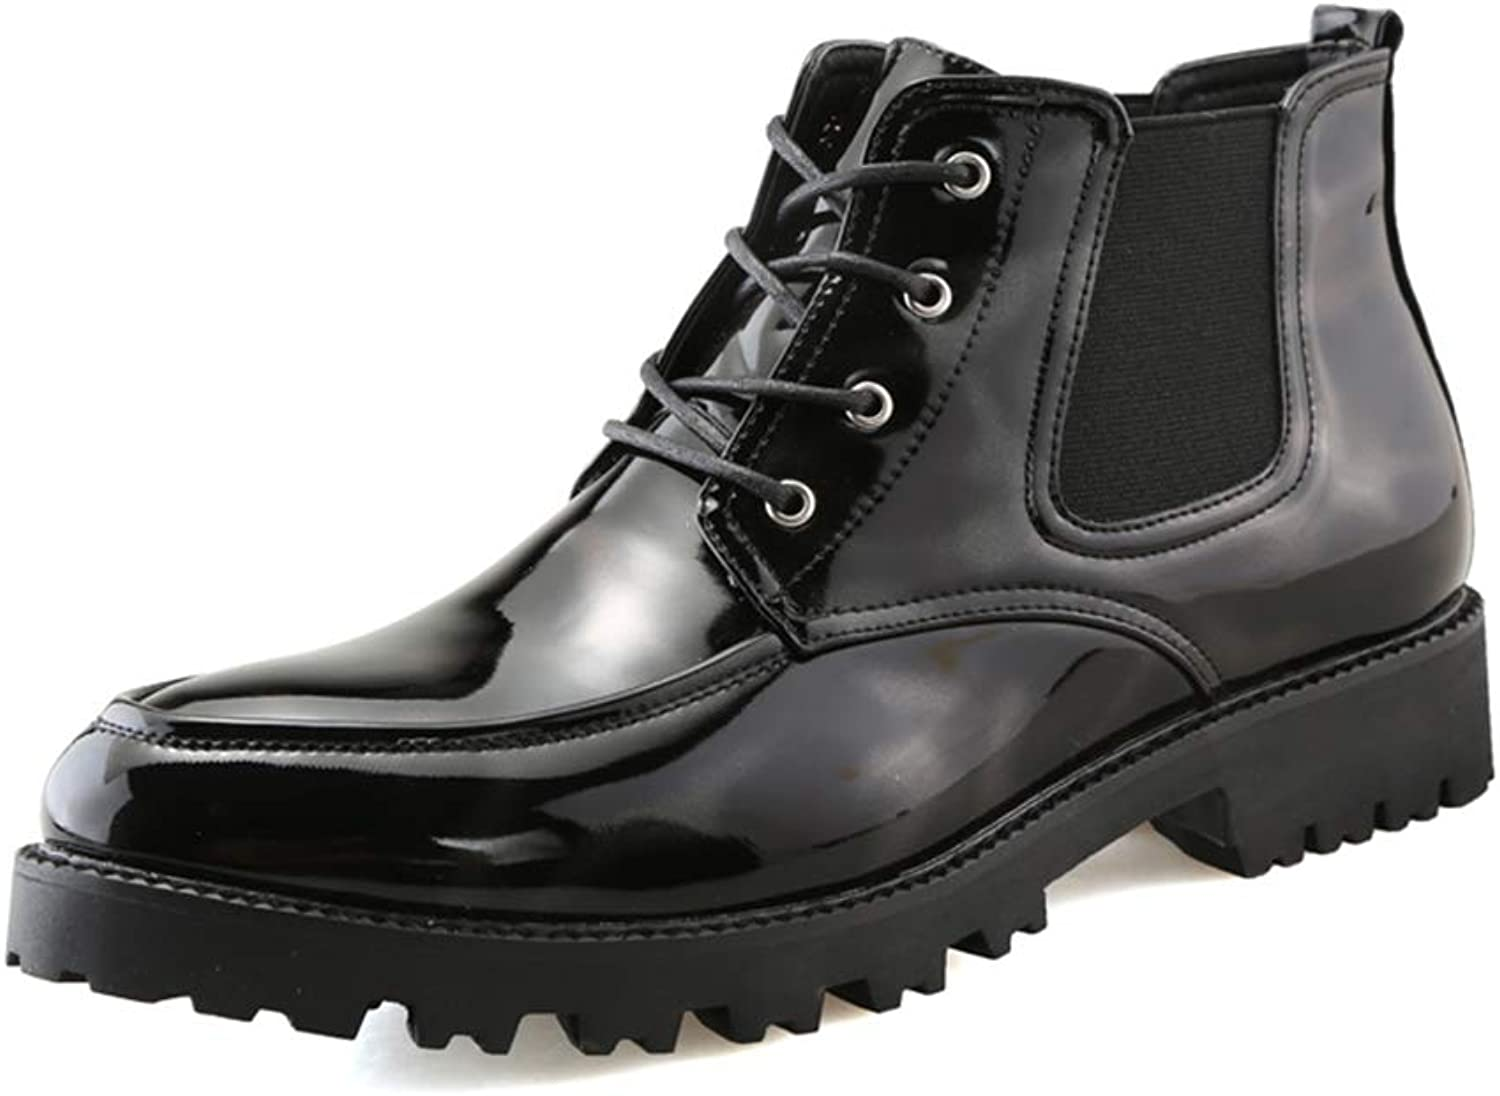 Men's Fashion Ankle Boots Casual Hit color Round Top Waterproof Outsole British Style Martin shoes